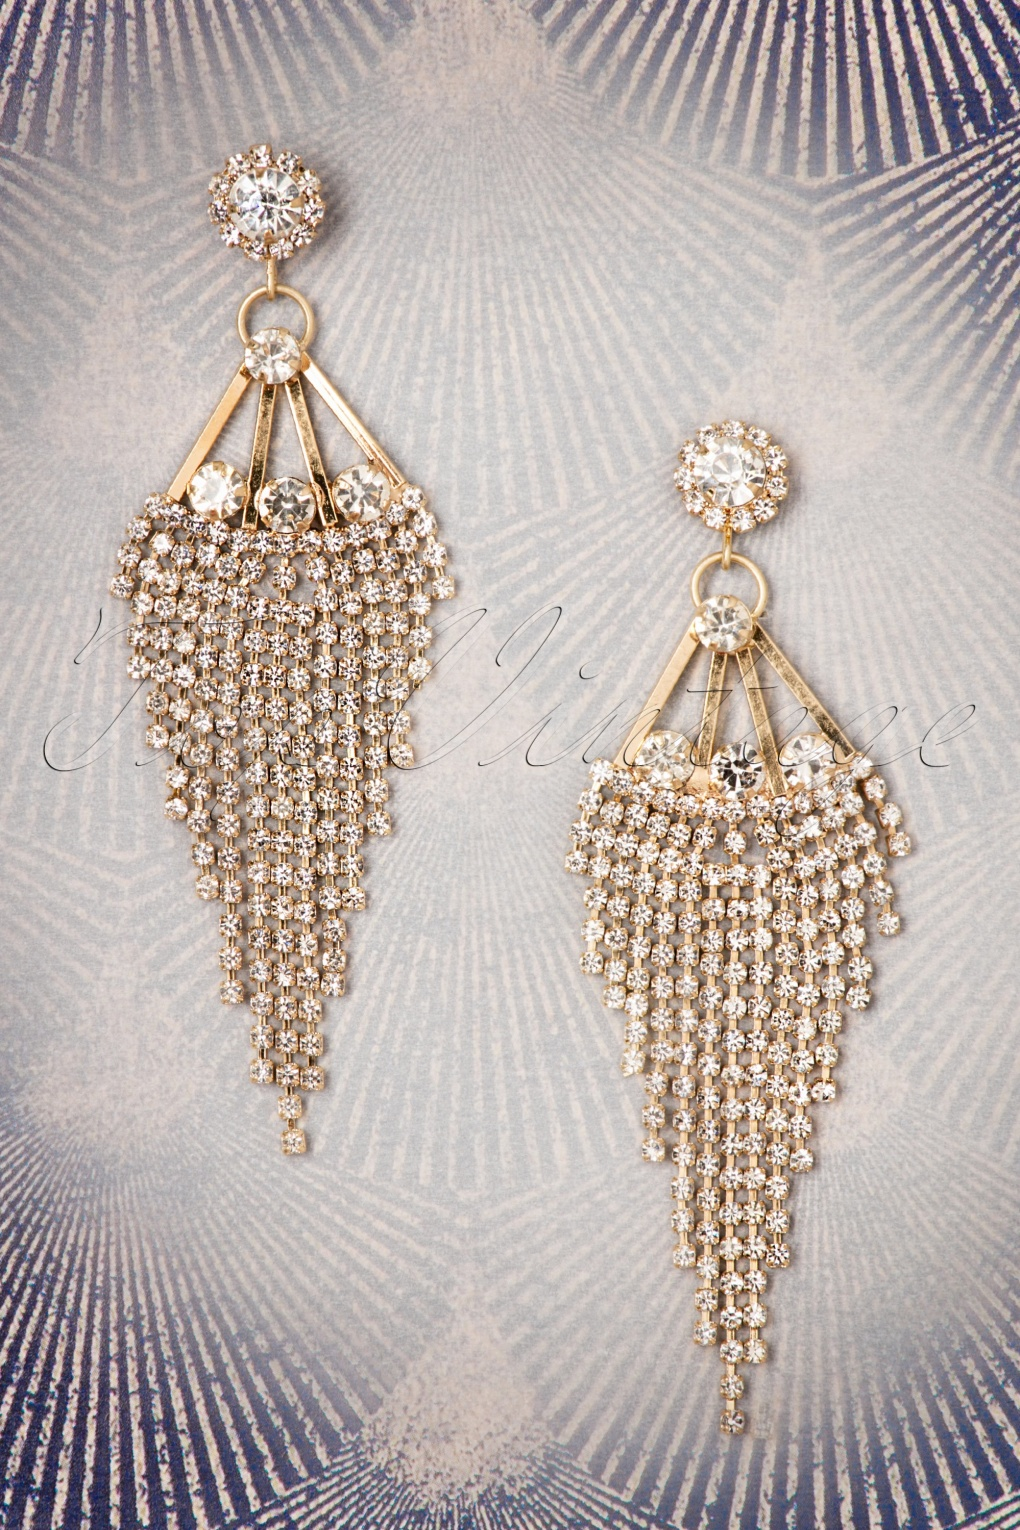 1920s Jewelry Styles History 20s Crystal Cascade Chandelier Earrings in Gold £21.85 AT vintagedancer.com